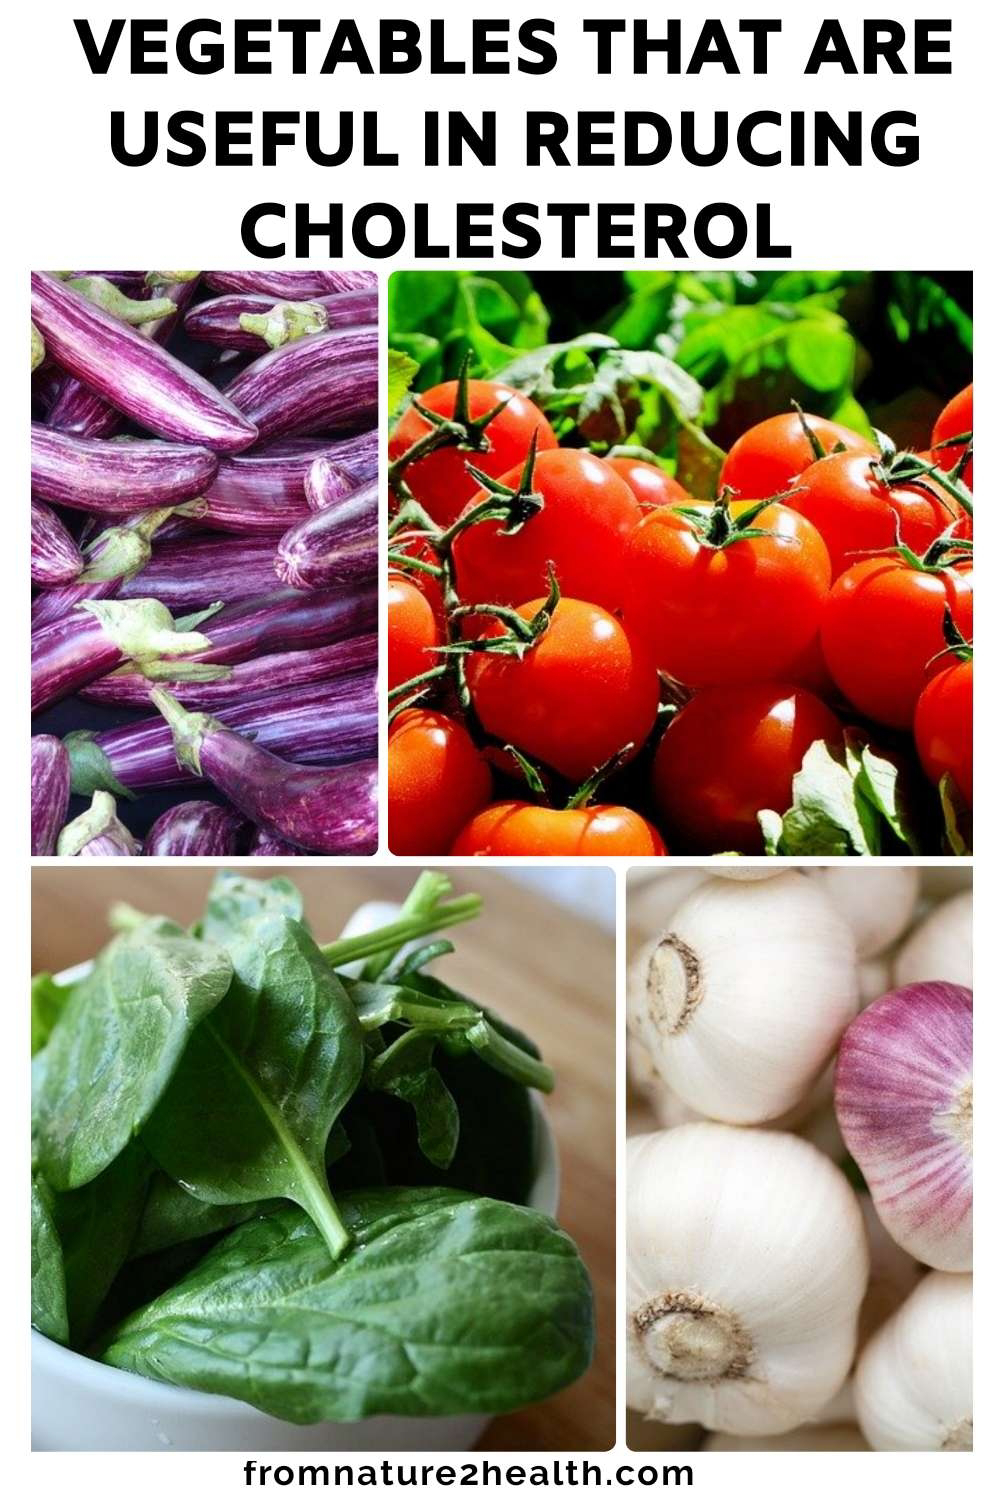 Garlic, Spinach, Tomatoes, Eggplant are Vegetables that are useful in reducing cholesterol